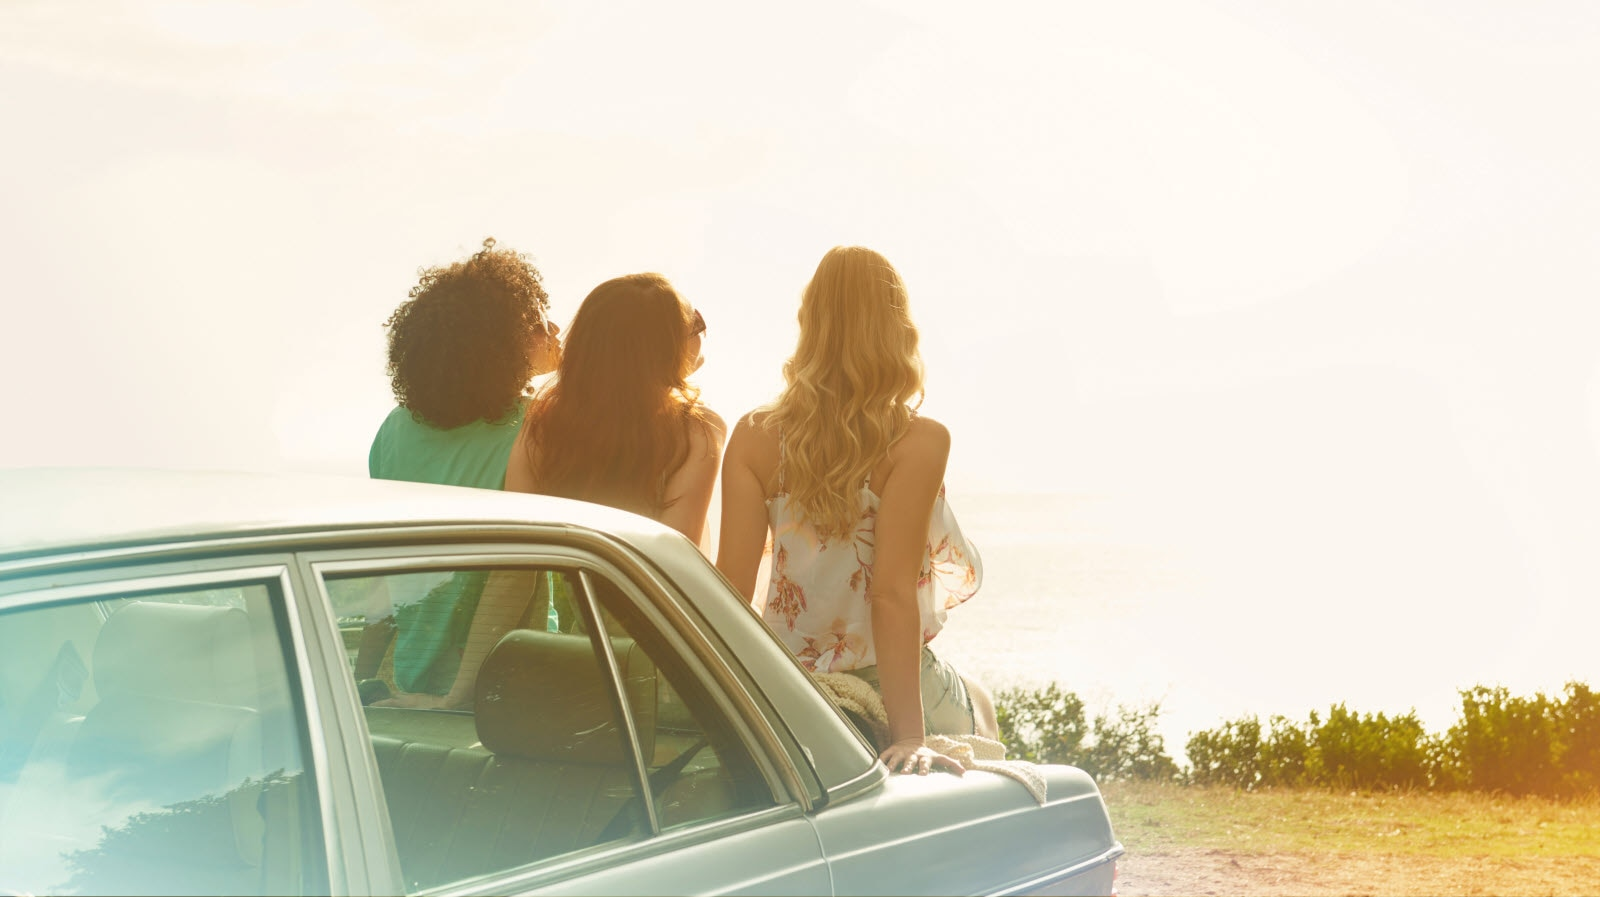 iStock_People_Car_Summer_Sommarkampanj_CheckOut.jpg